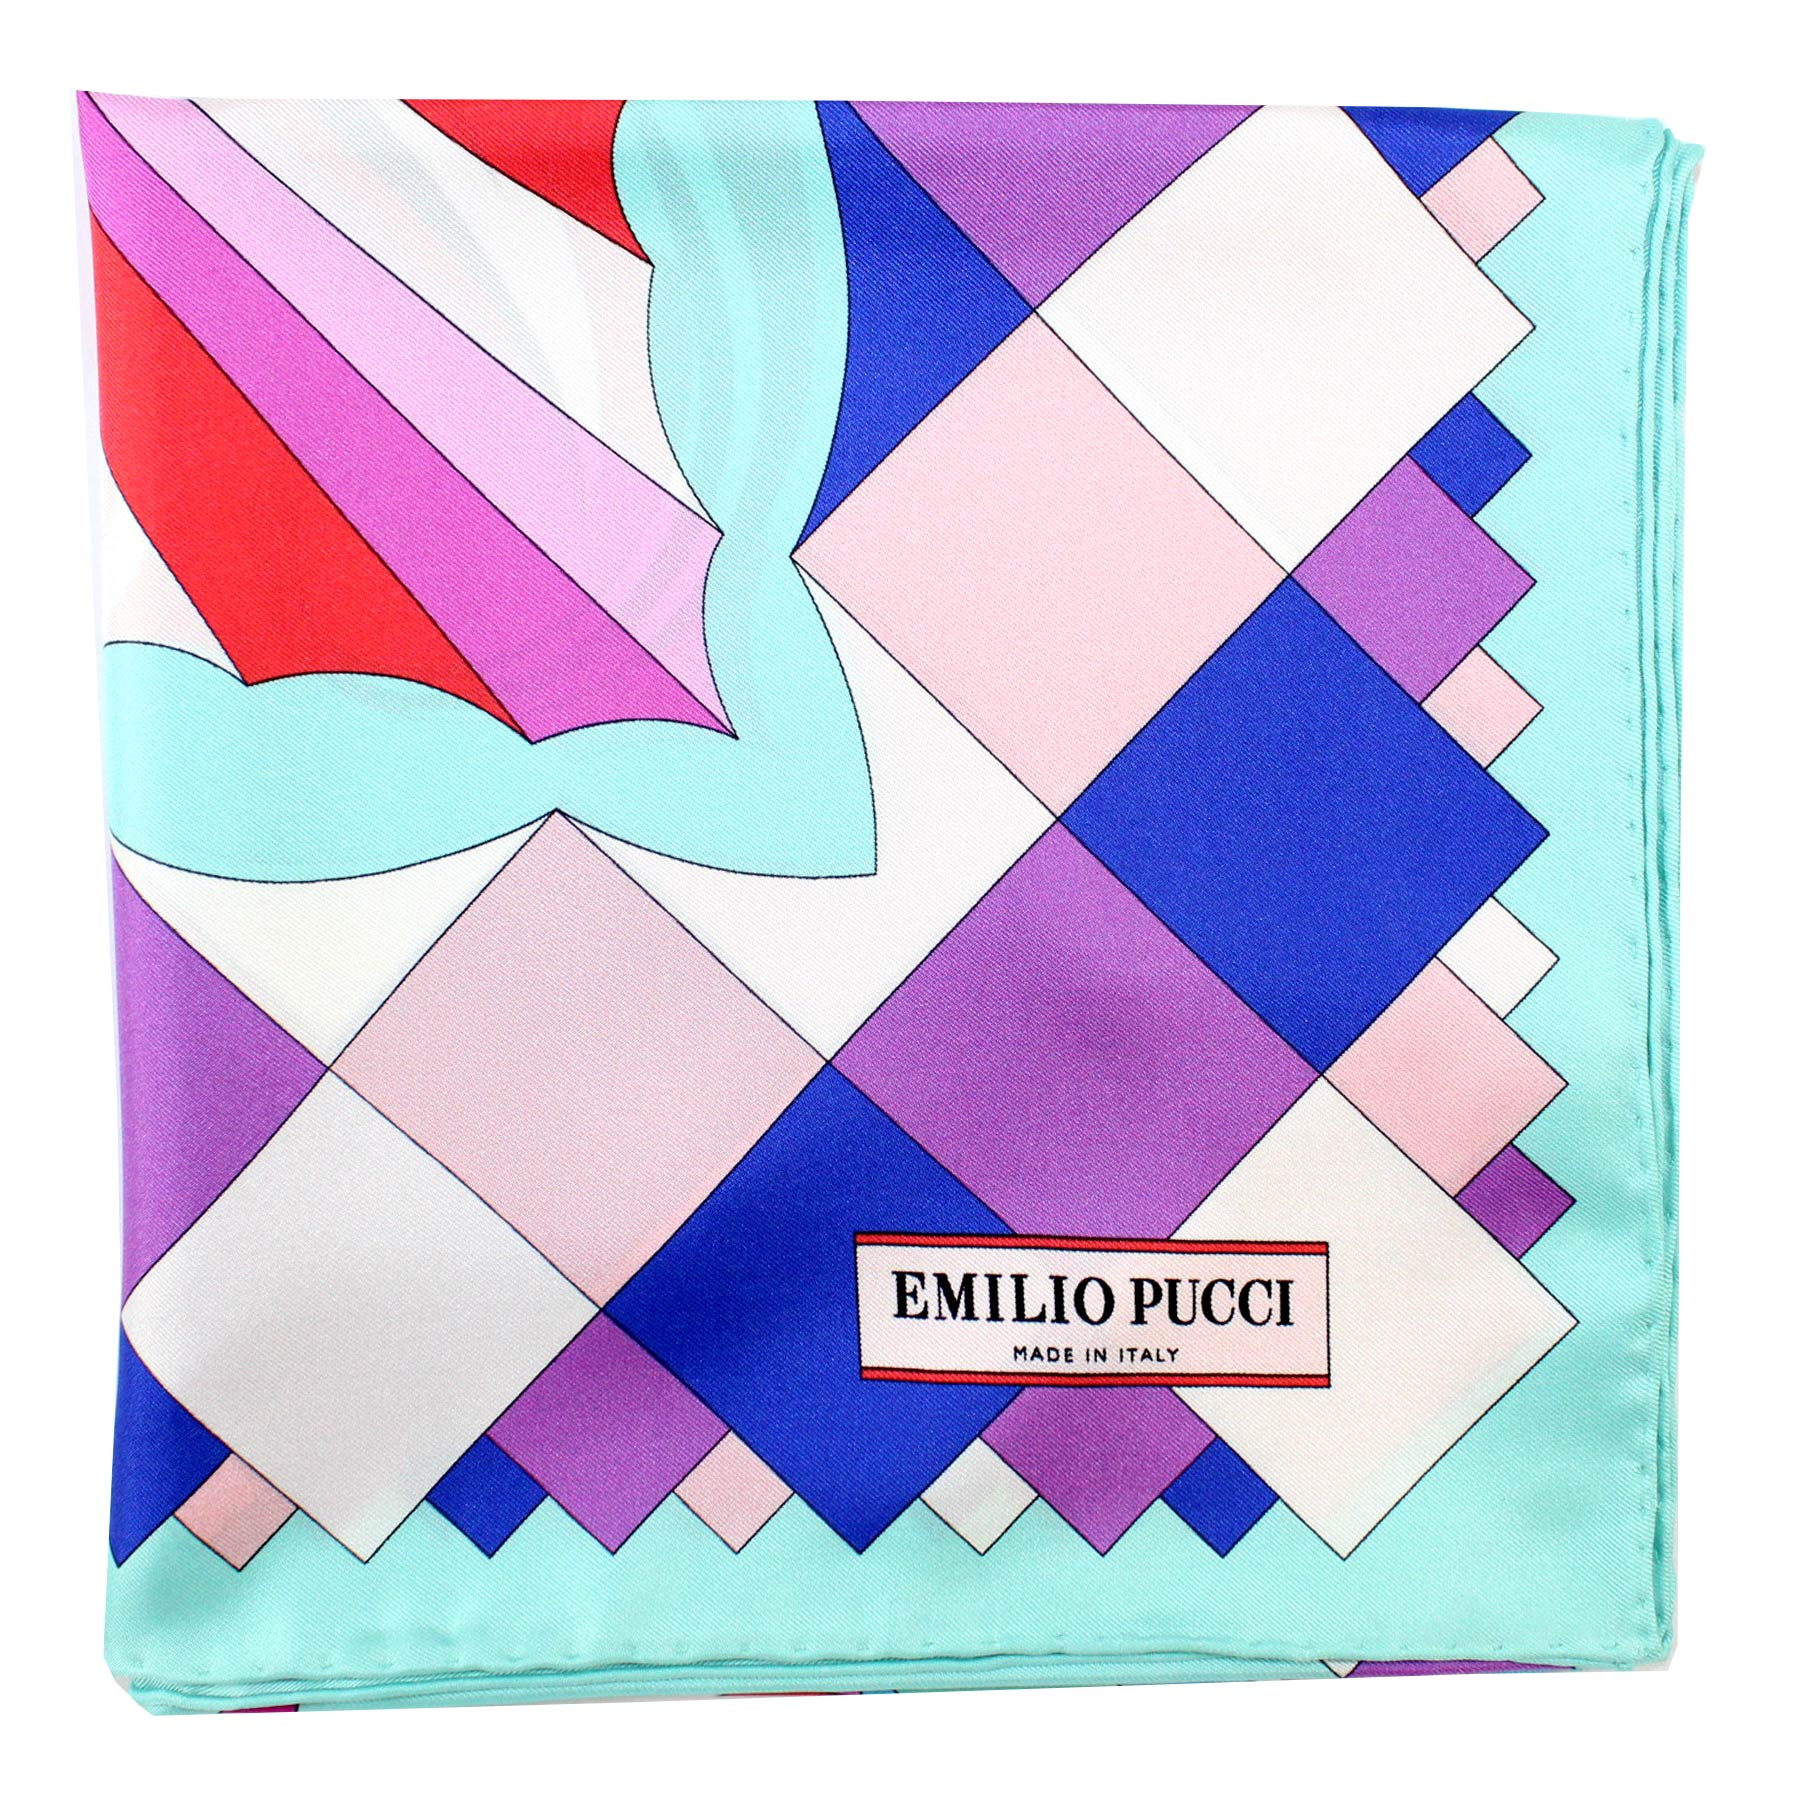 Emilio Pucci Scarf Purple Blue Red Floral - Large Twill Silk Square Scarf